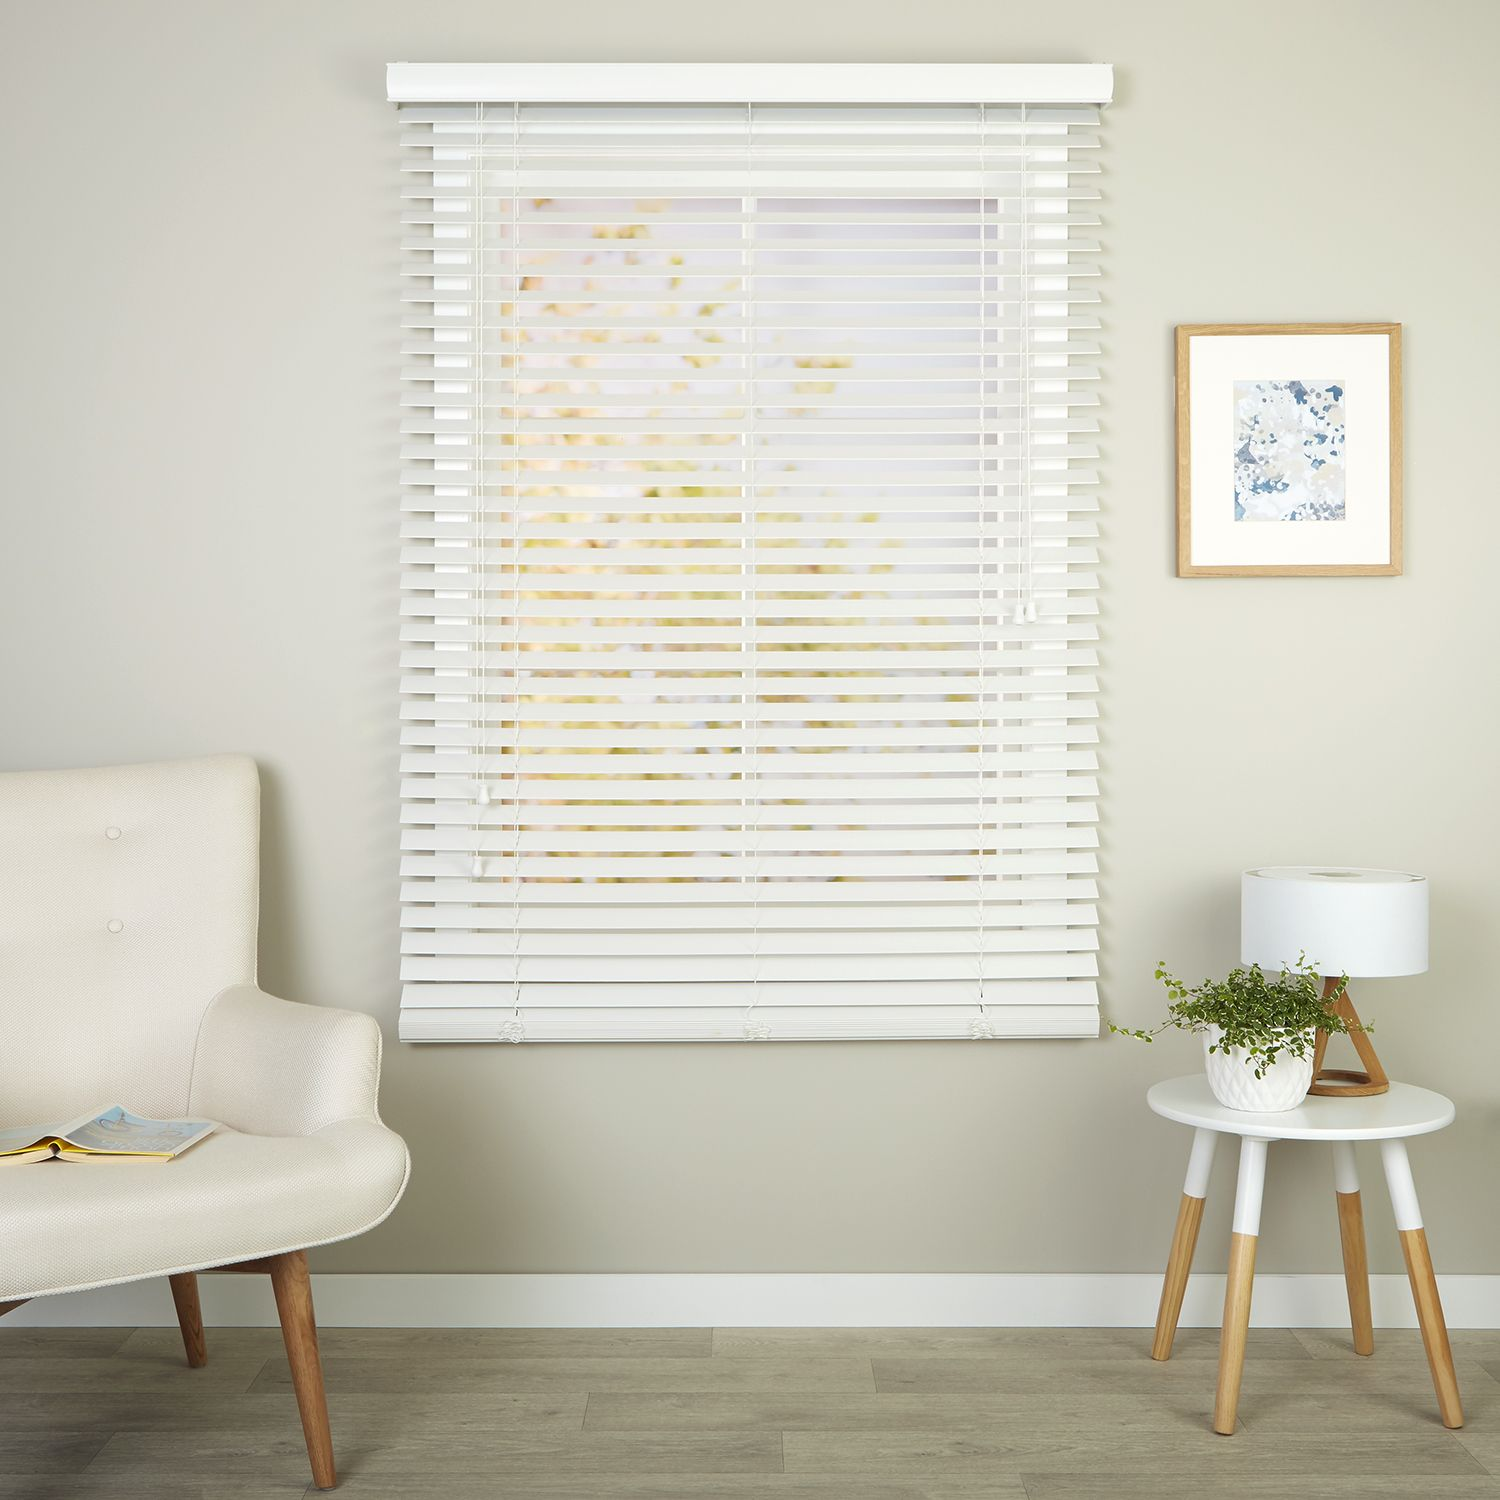 Richmond White Readymade Ecowood Venetian Blind Curtain Studio Buy Curtains Online Venetian Blinds Blinds Curtains With Blinds